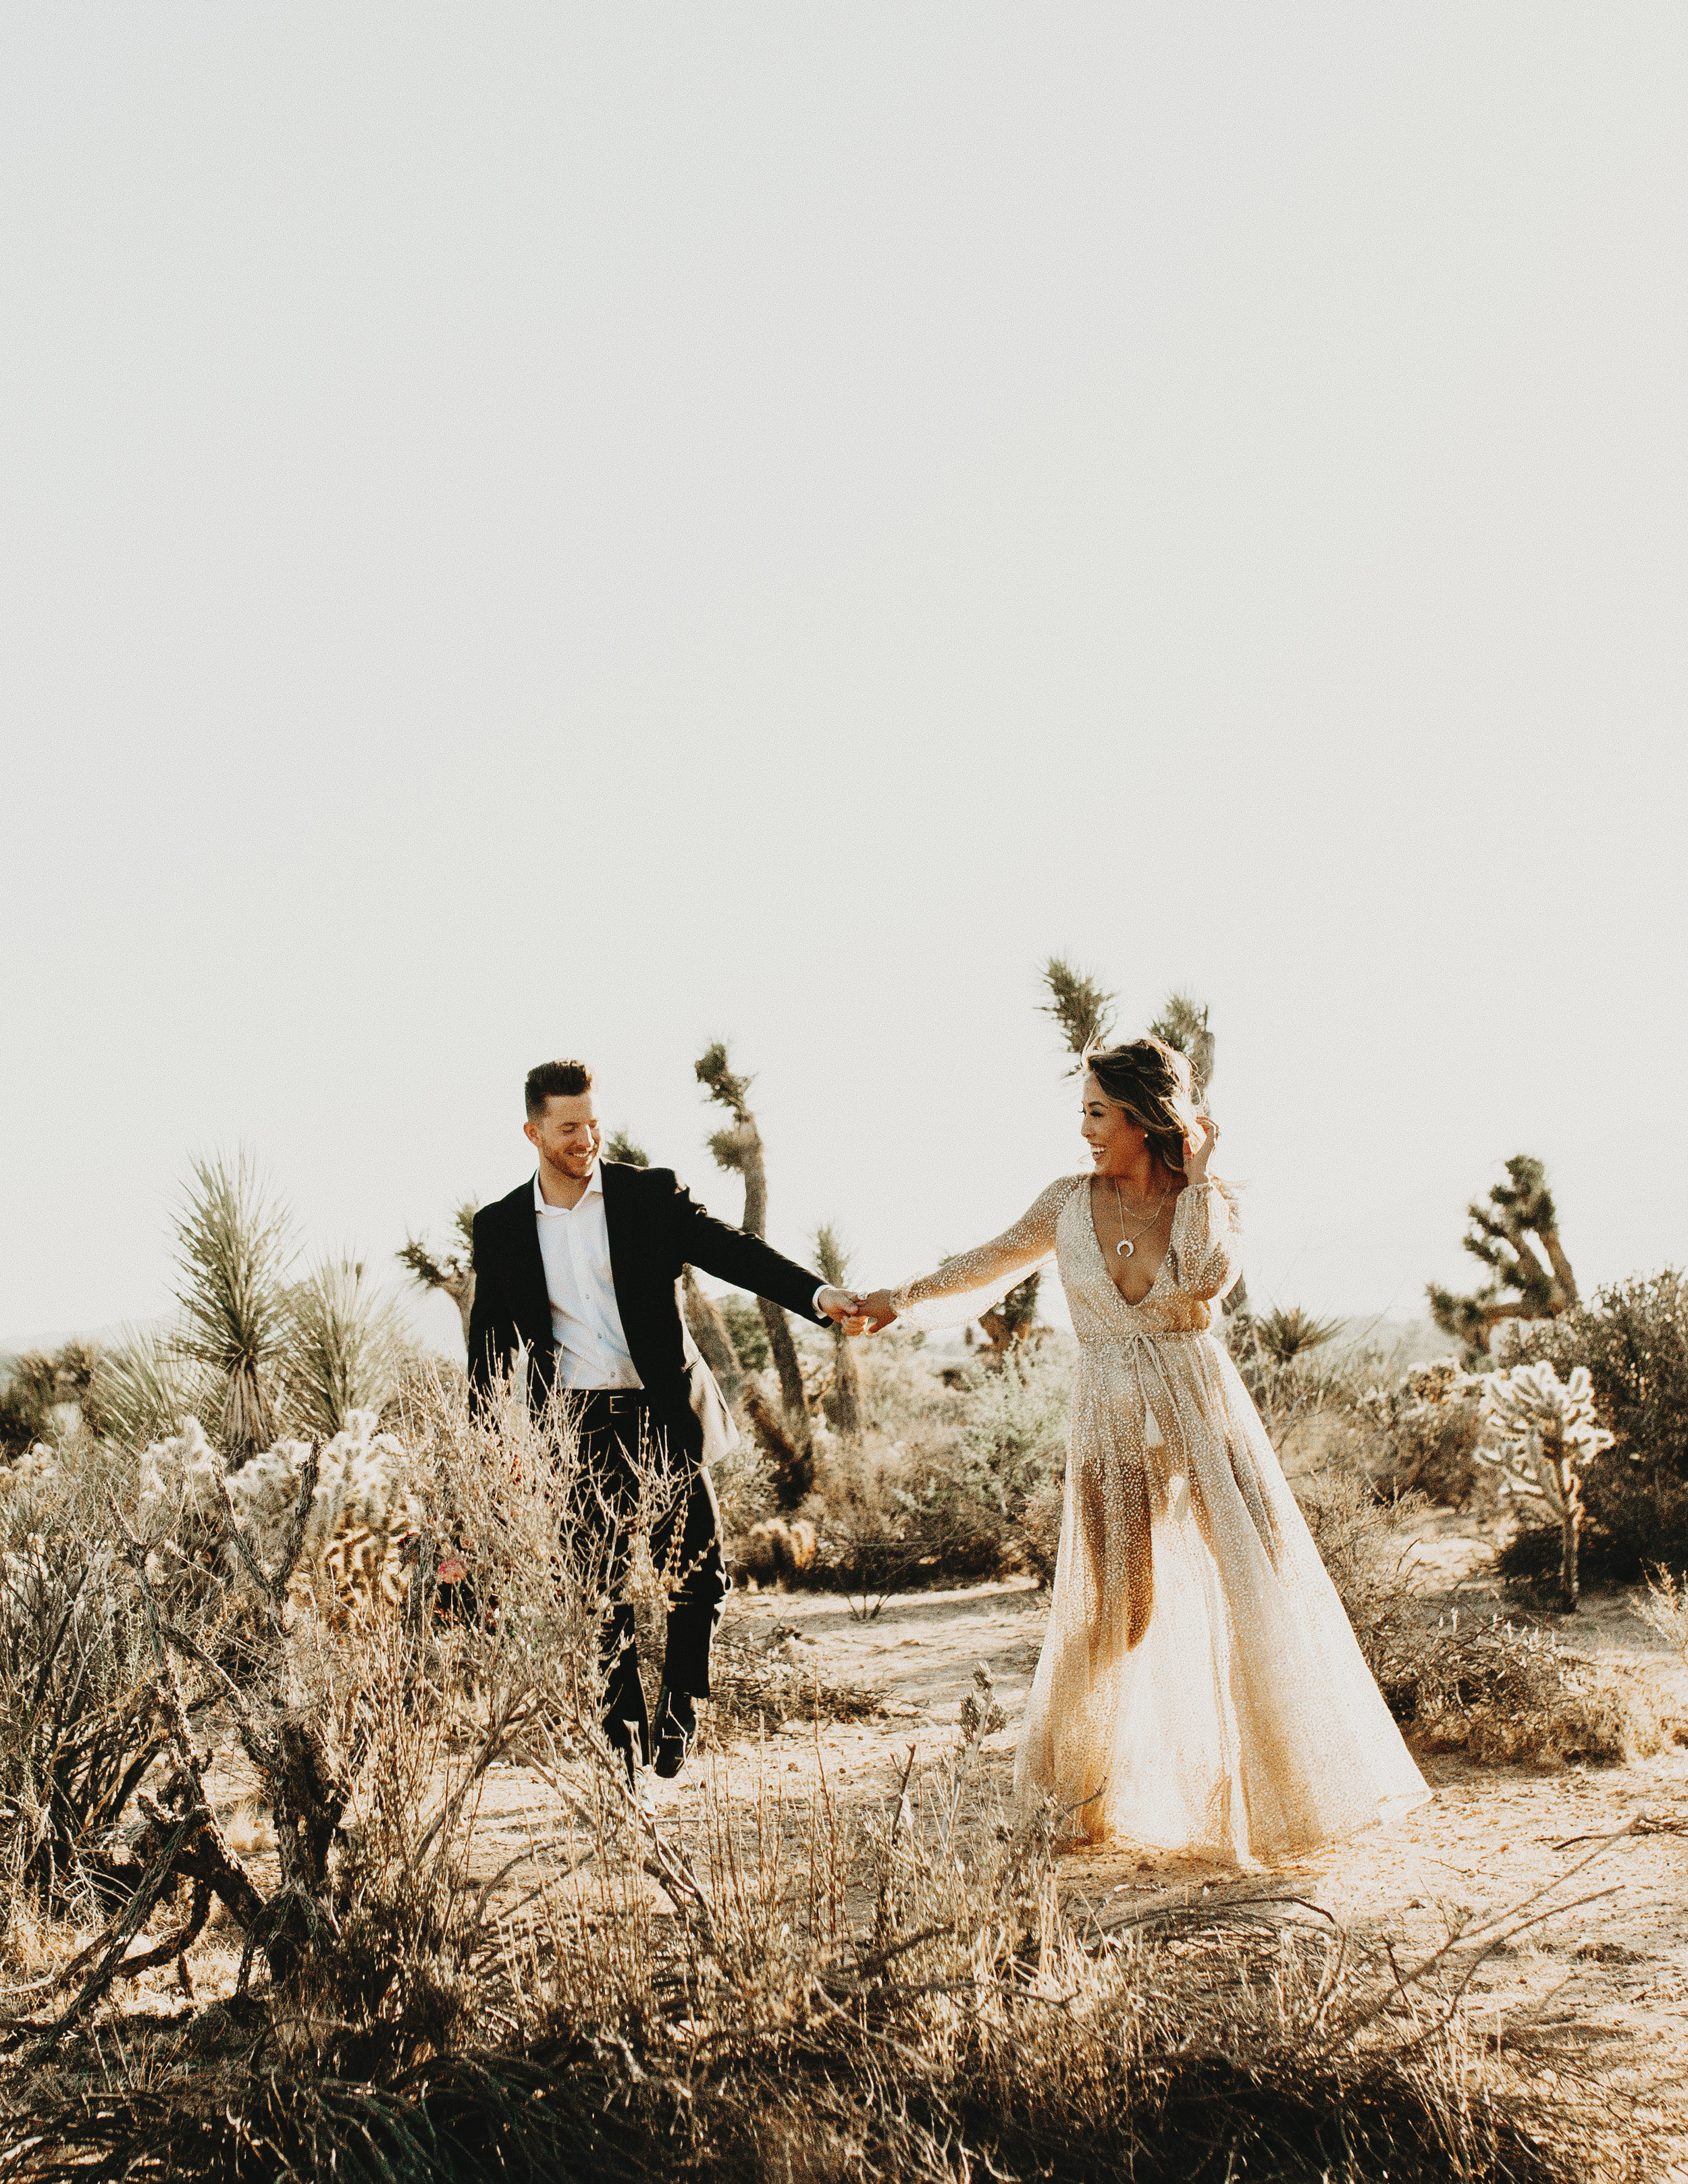 that's it folks - You are well on your way to the best elopement day ever in Joshua Tree National ParkxxCheers